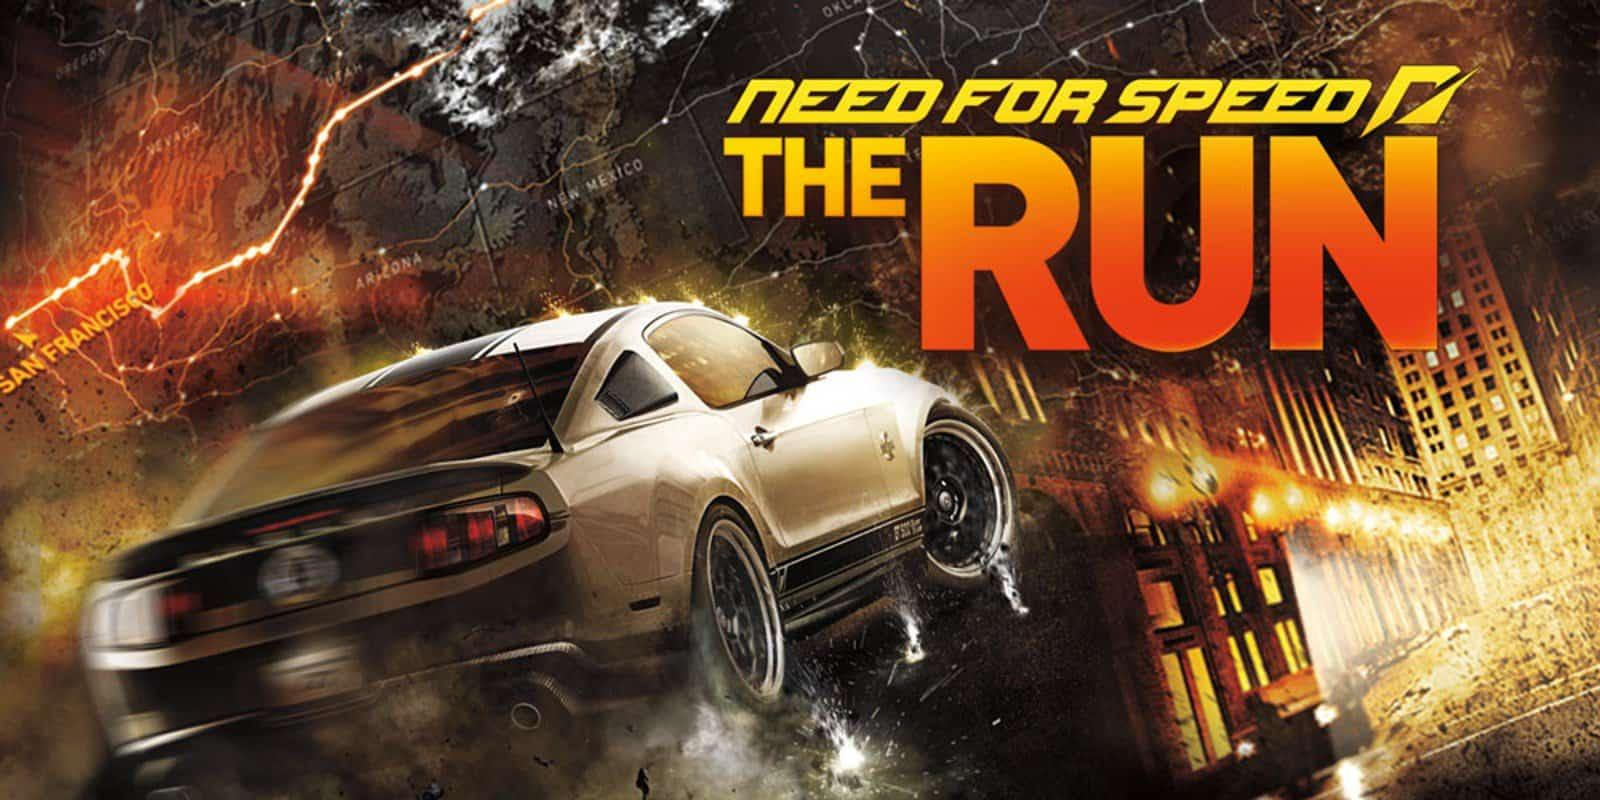 Need For Speed The Run iOS/APK Full Version Free Download